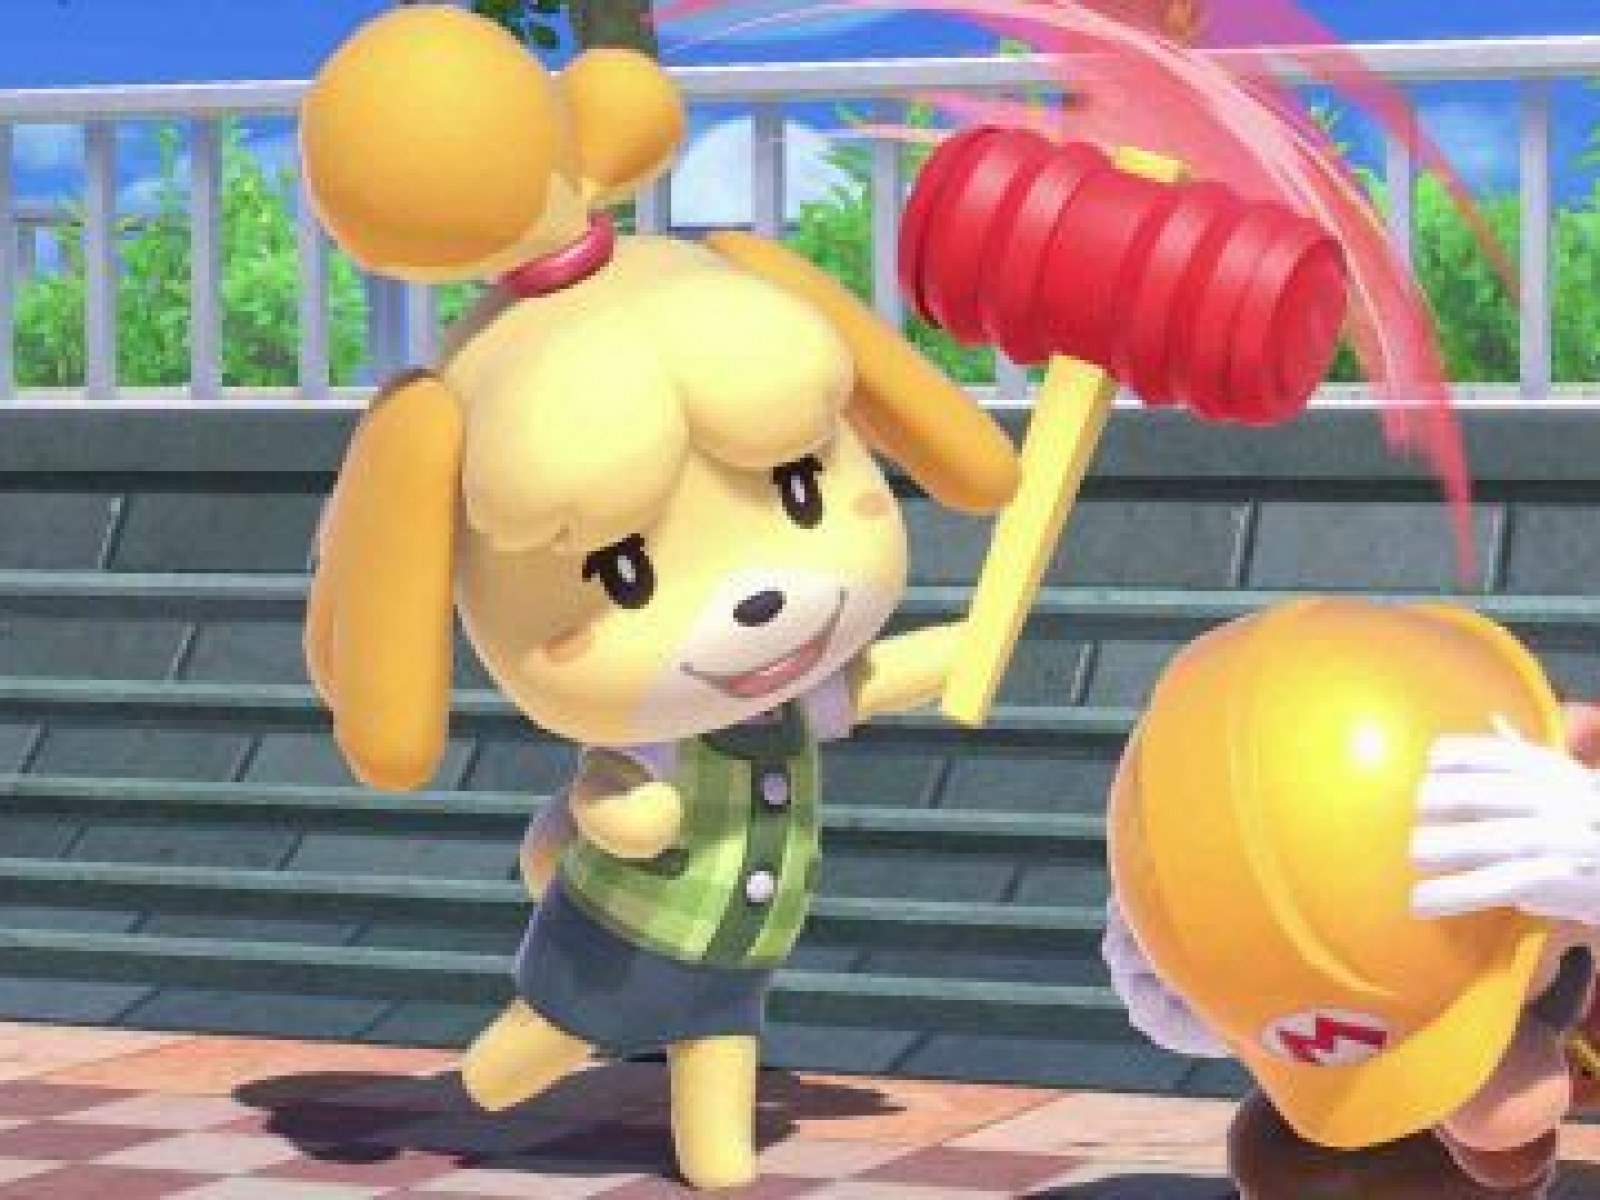 Smash Ultimate' 1 2 Patch Notes: Matchmaking Fixes and Some